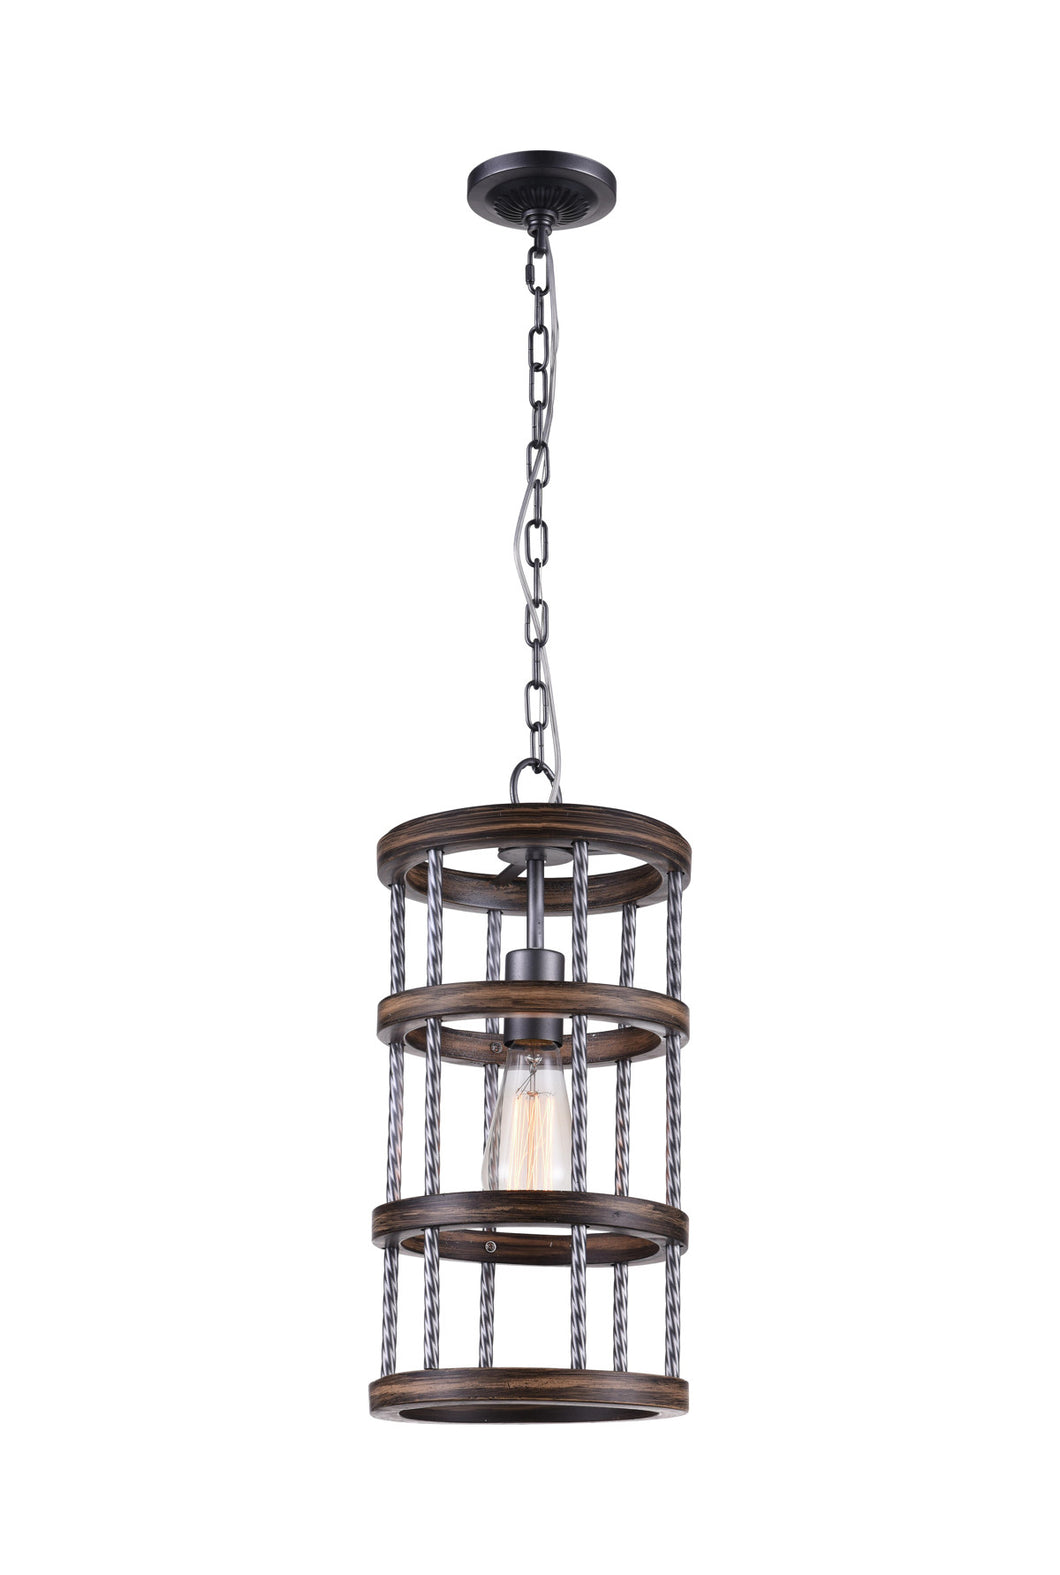 1 Light Drum Shade Mini Chandelier with Gun Metal finish